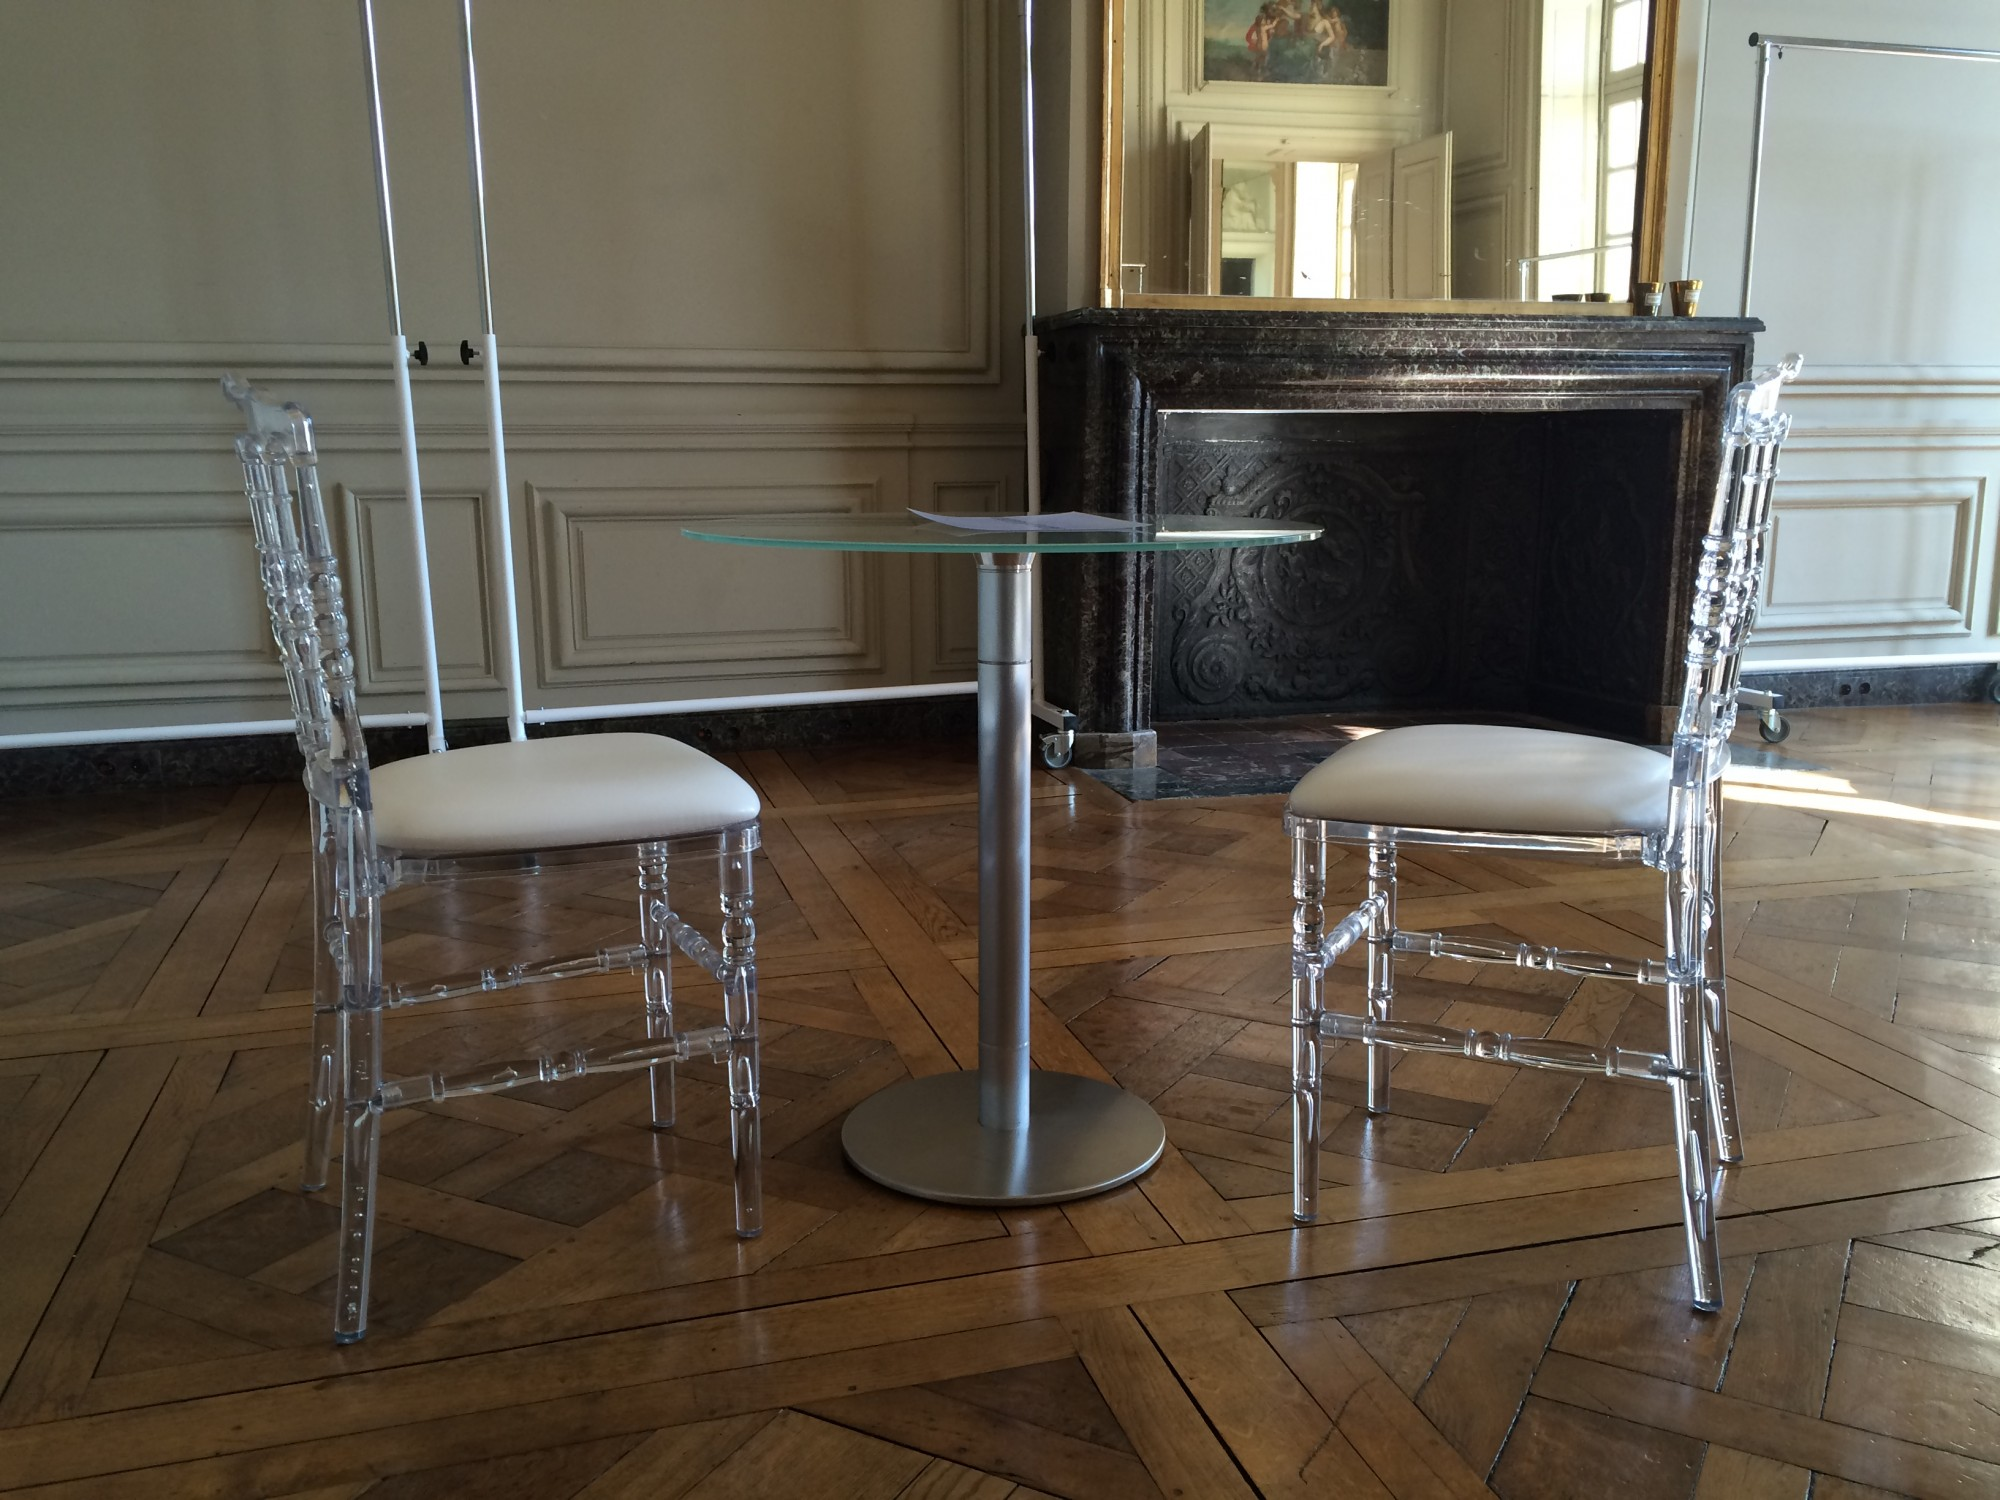 Location de chaise napol on transparente et de table en verre location mobilier de r ception - Chaises napoleon transparente ...